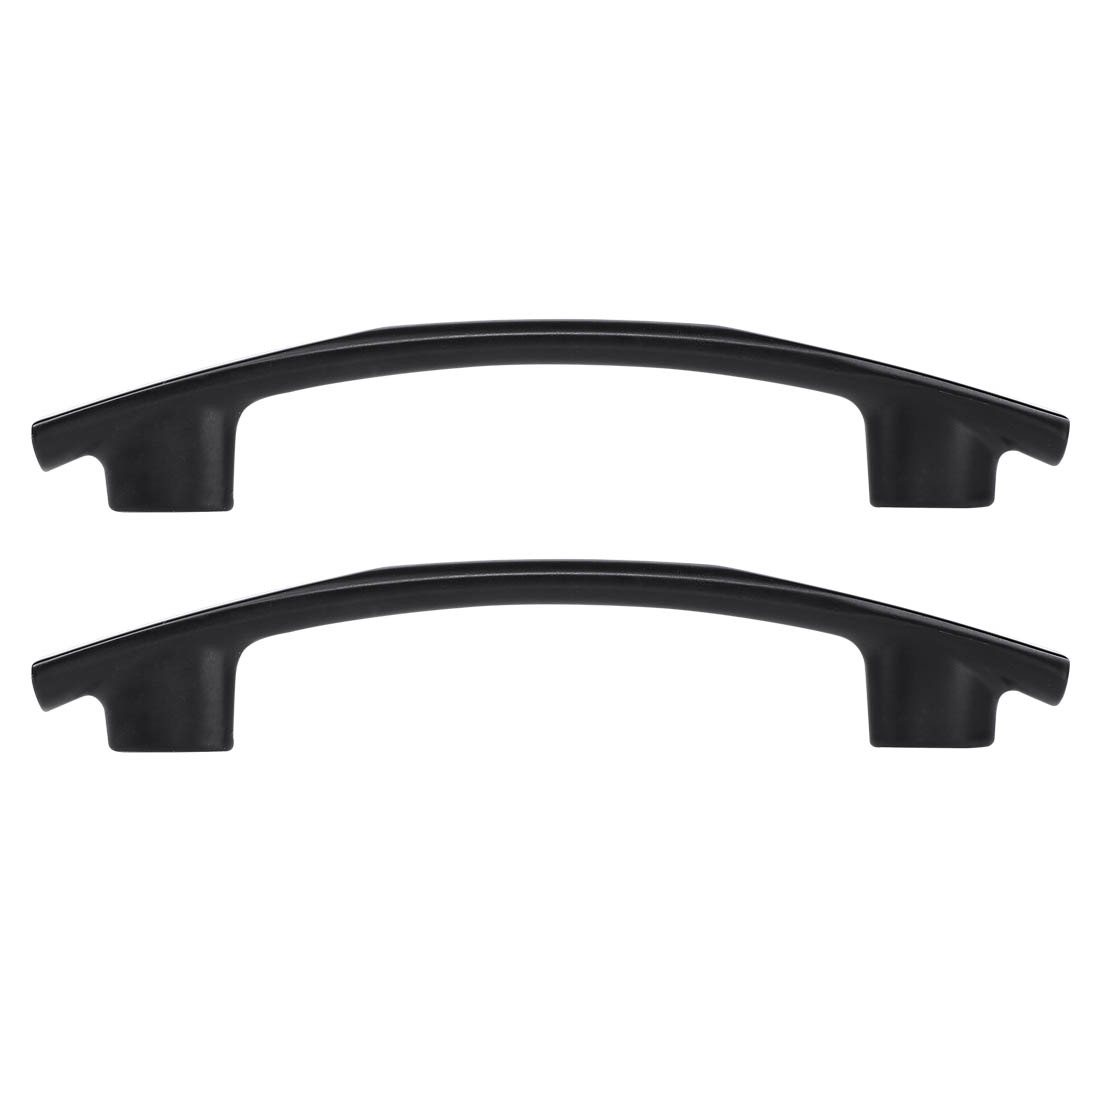 """Cabinet Handle Pull 3.8"""" Hole Center Painting for Cupboard Dresser 2pcs, Black"""